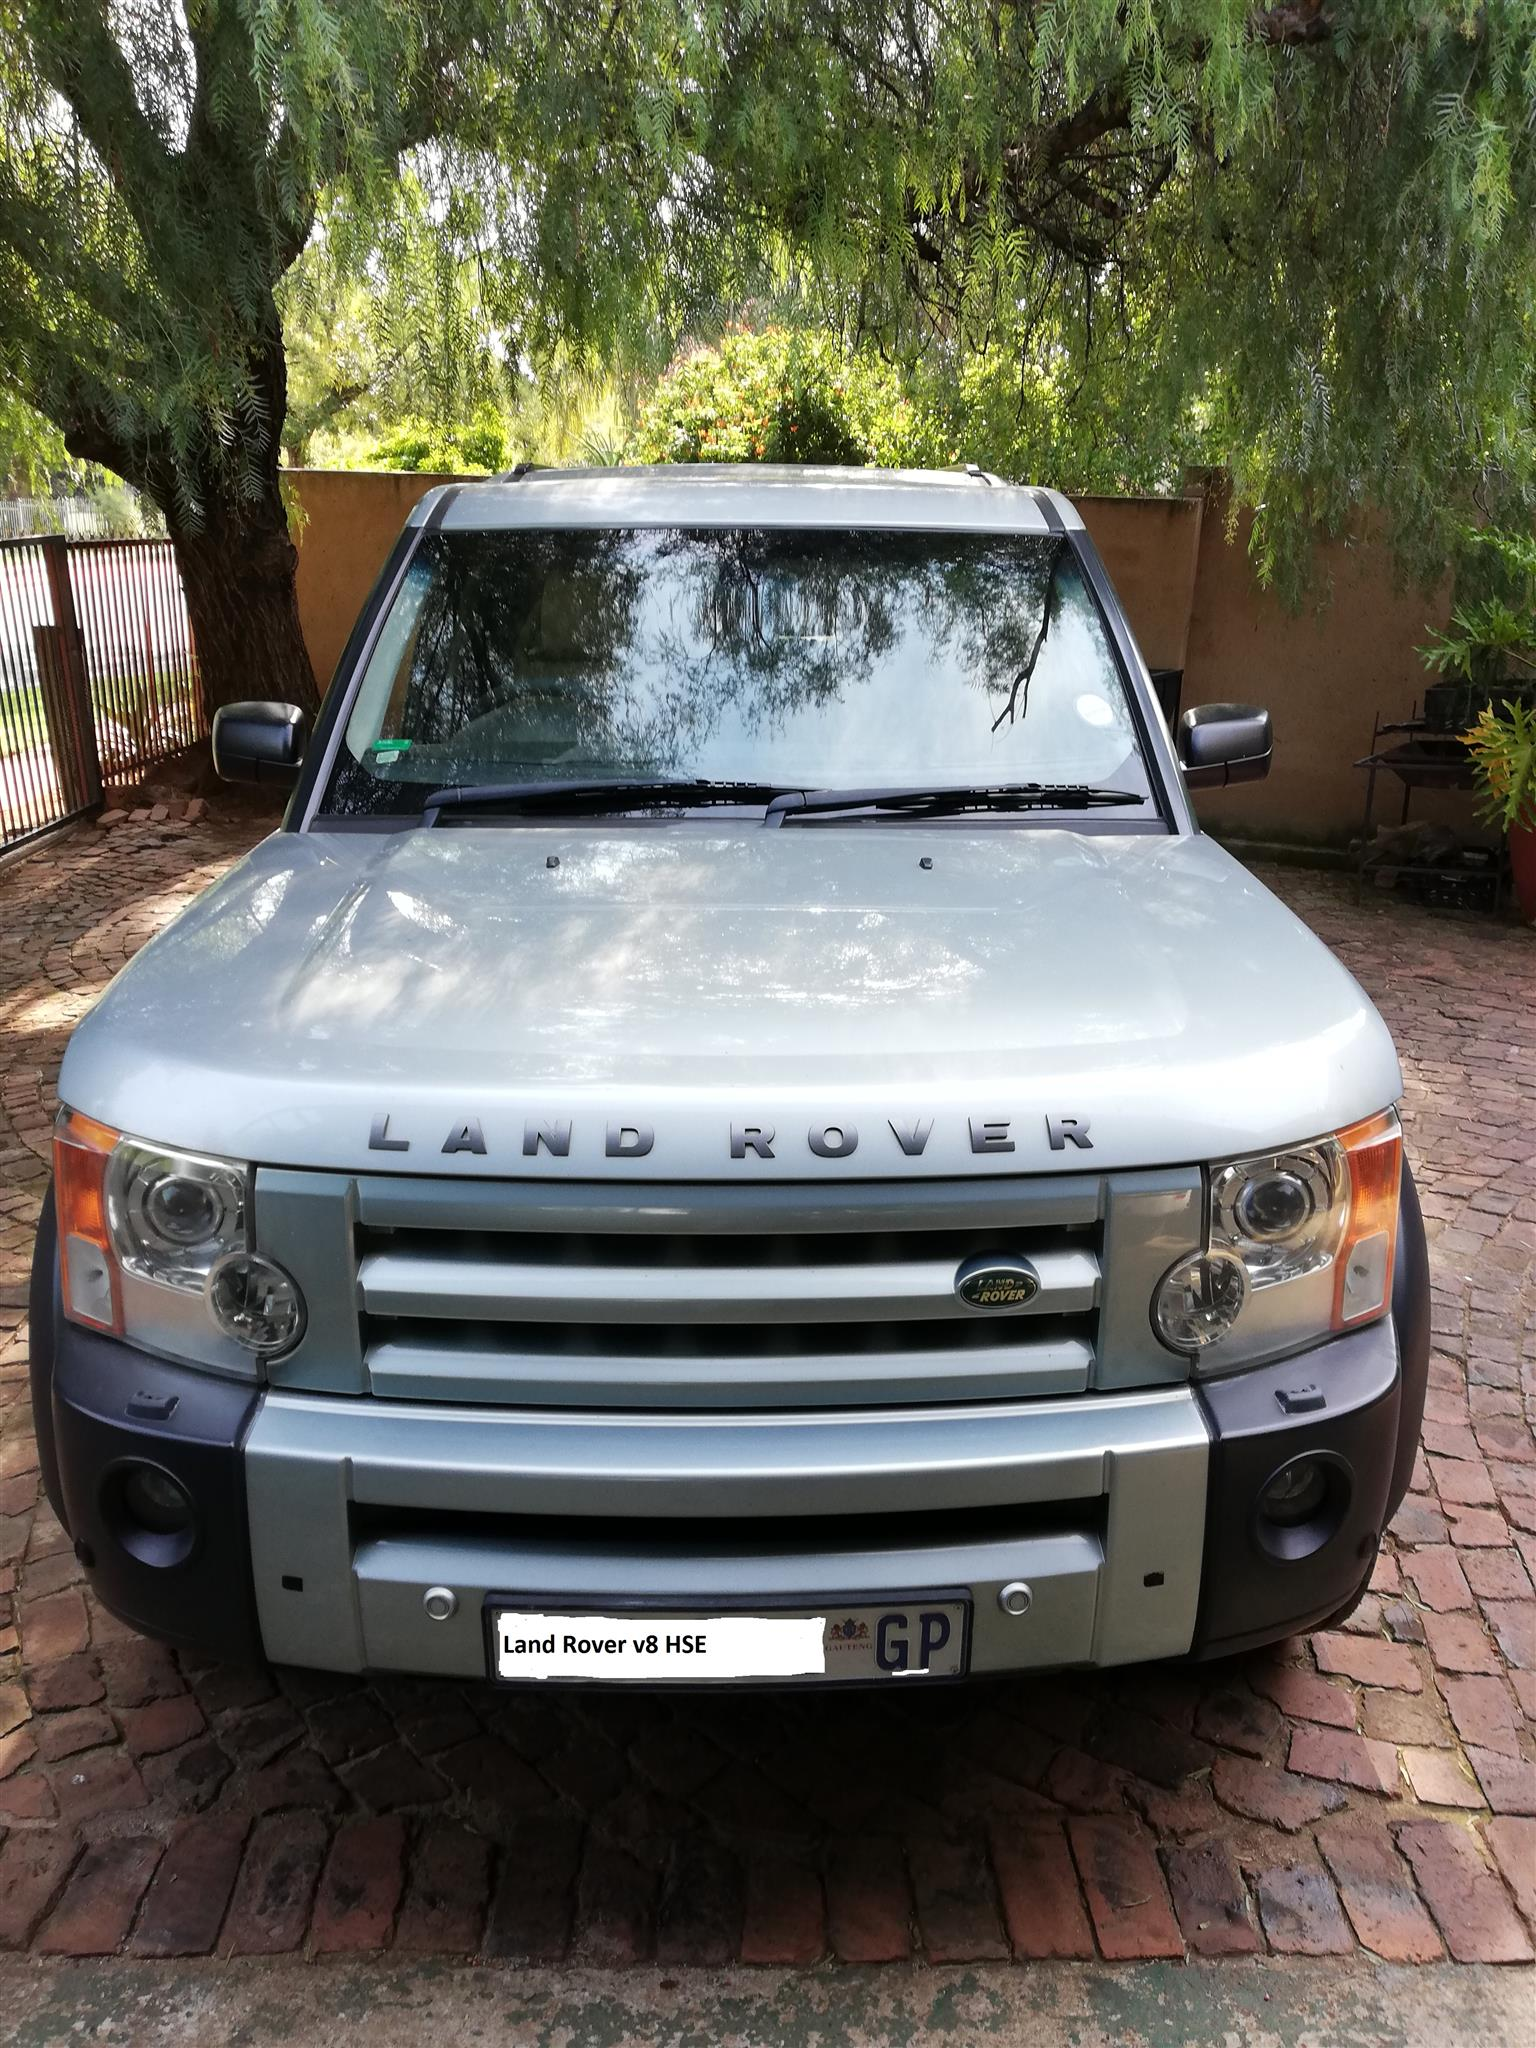 2007 Land Rover Discovery 3 V8 HSE | Junk Mail